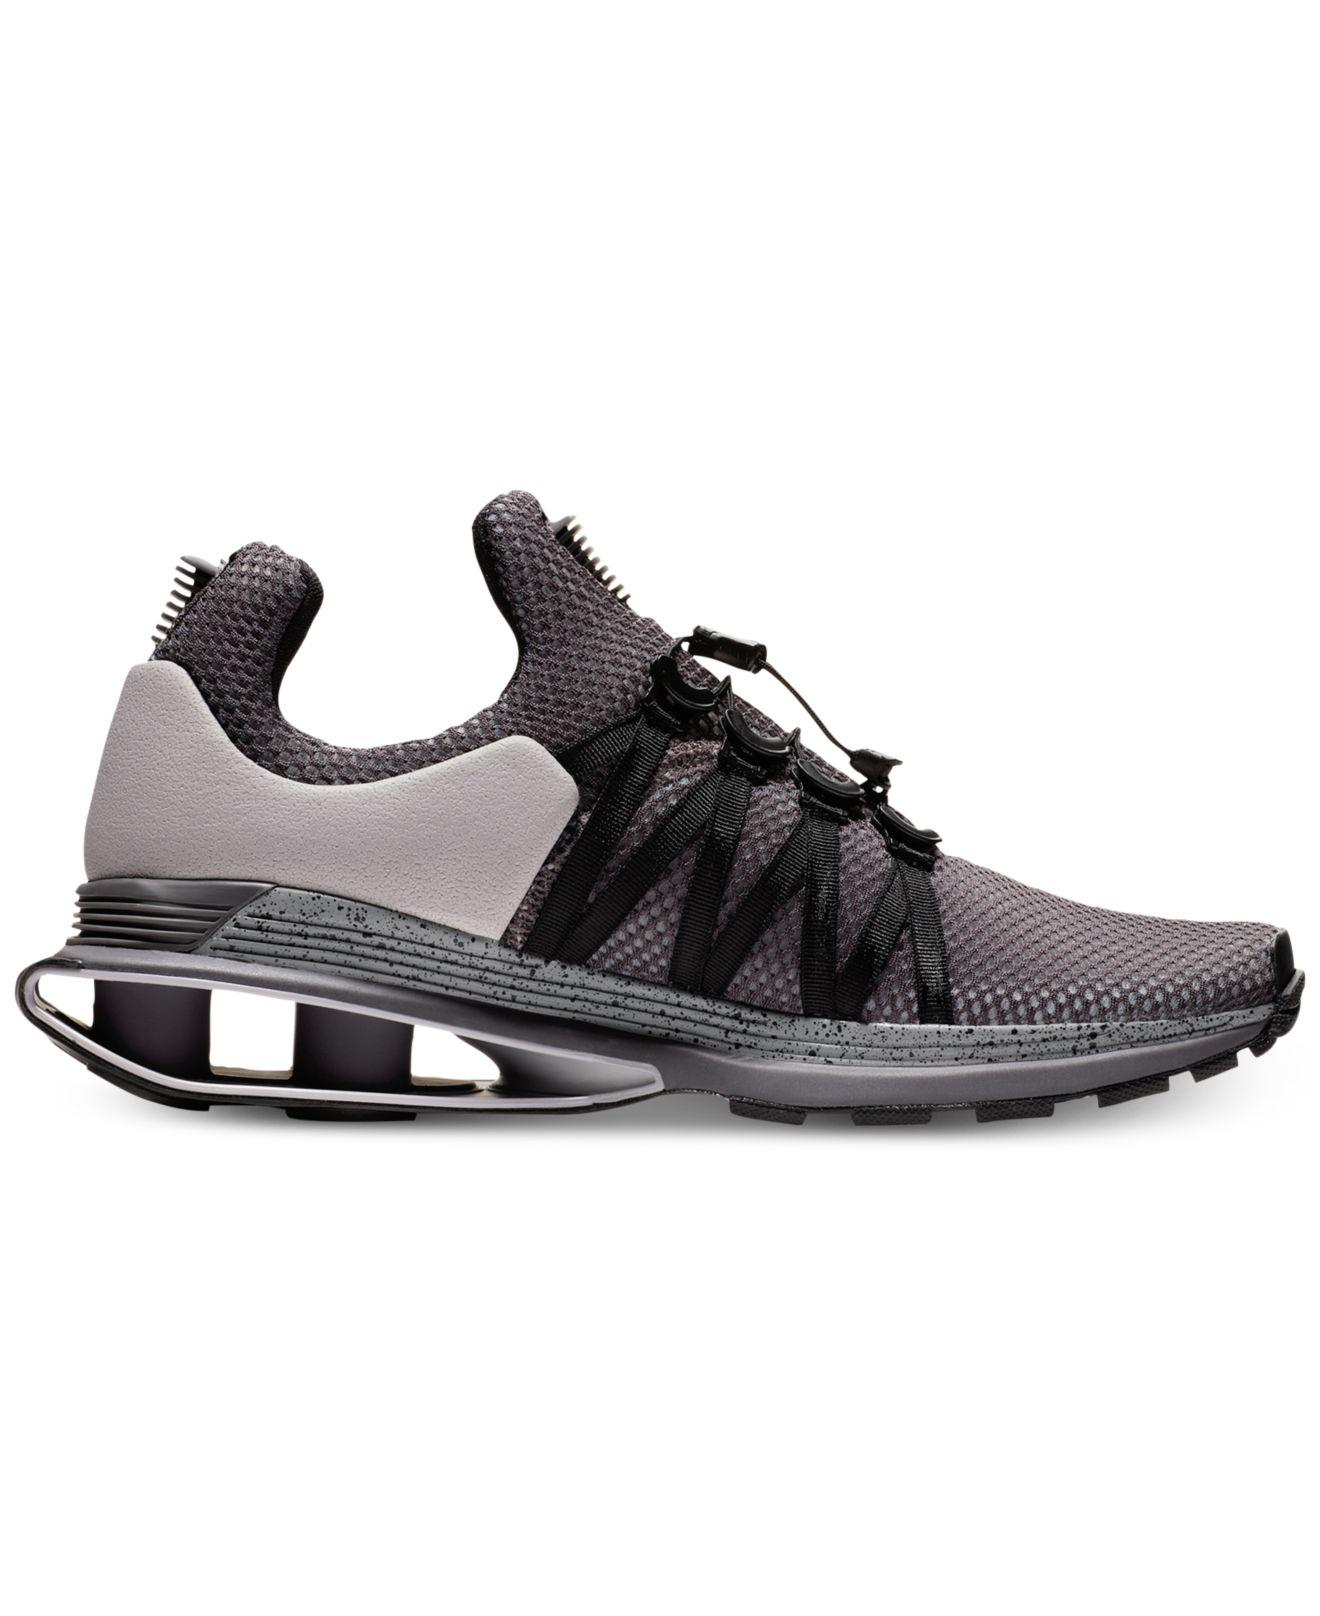 d1392151f8ba81 Lyst - Nike Shox Gravity Casual Sneakers From Finish Line in Black ...